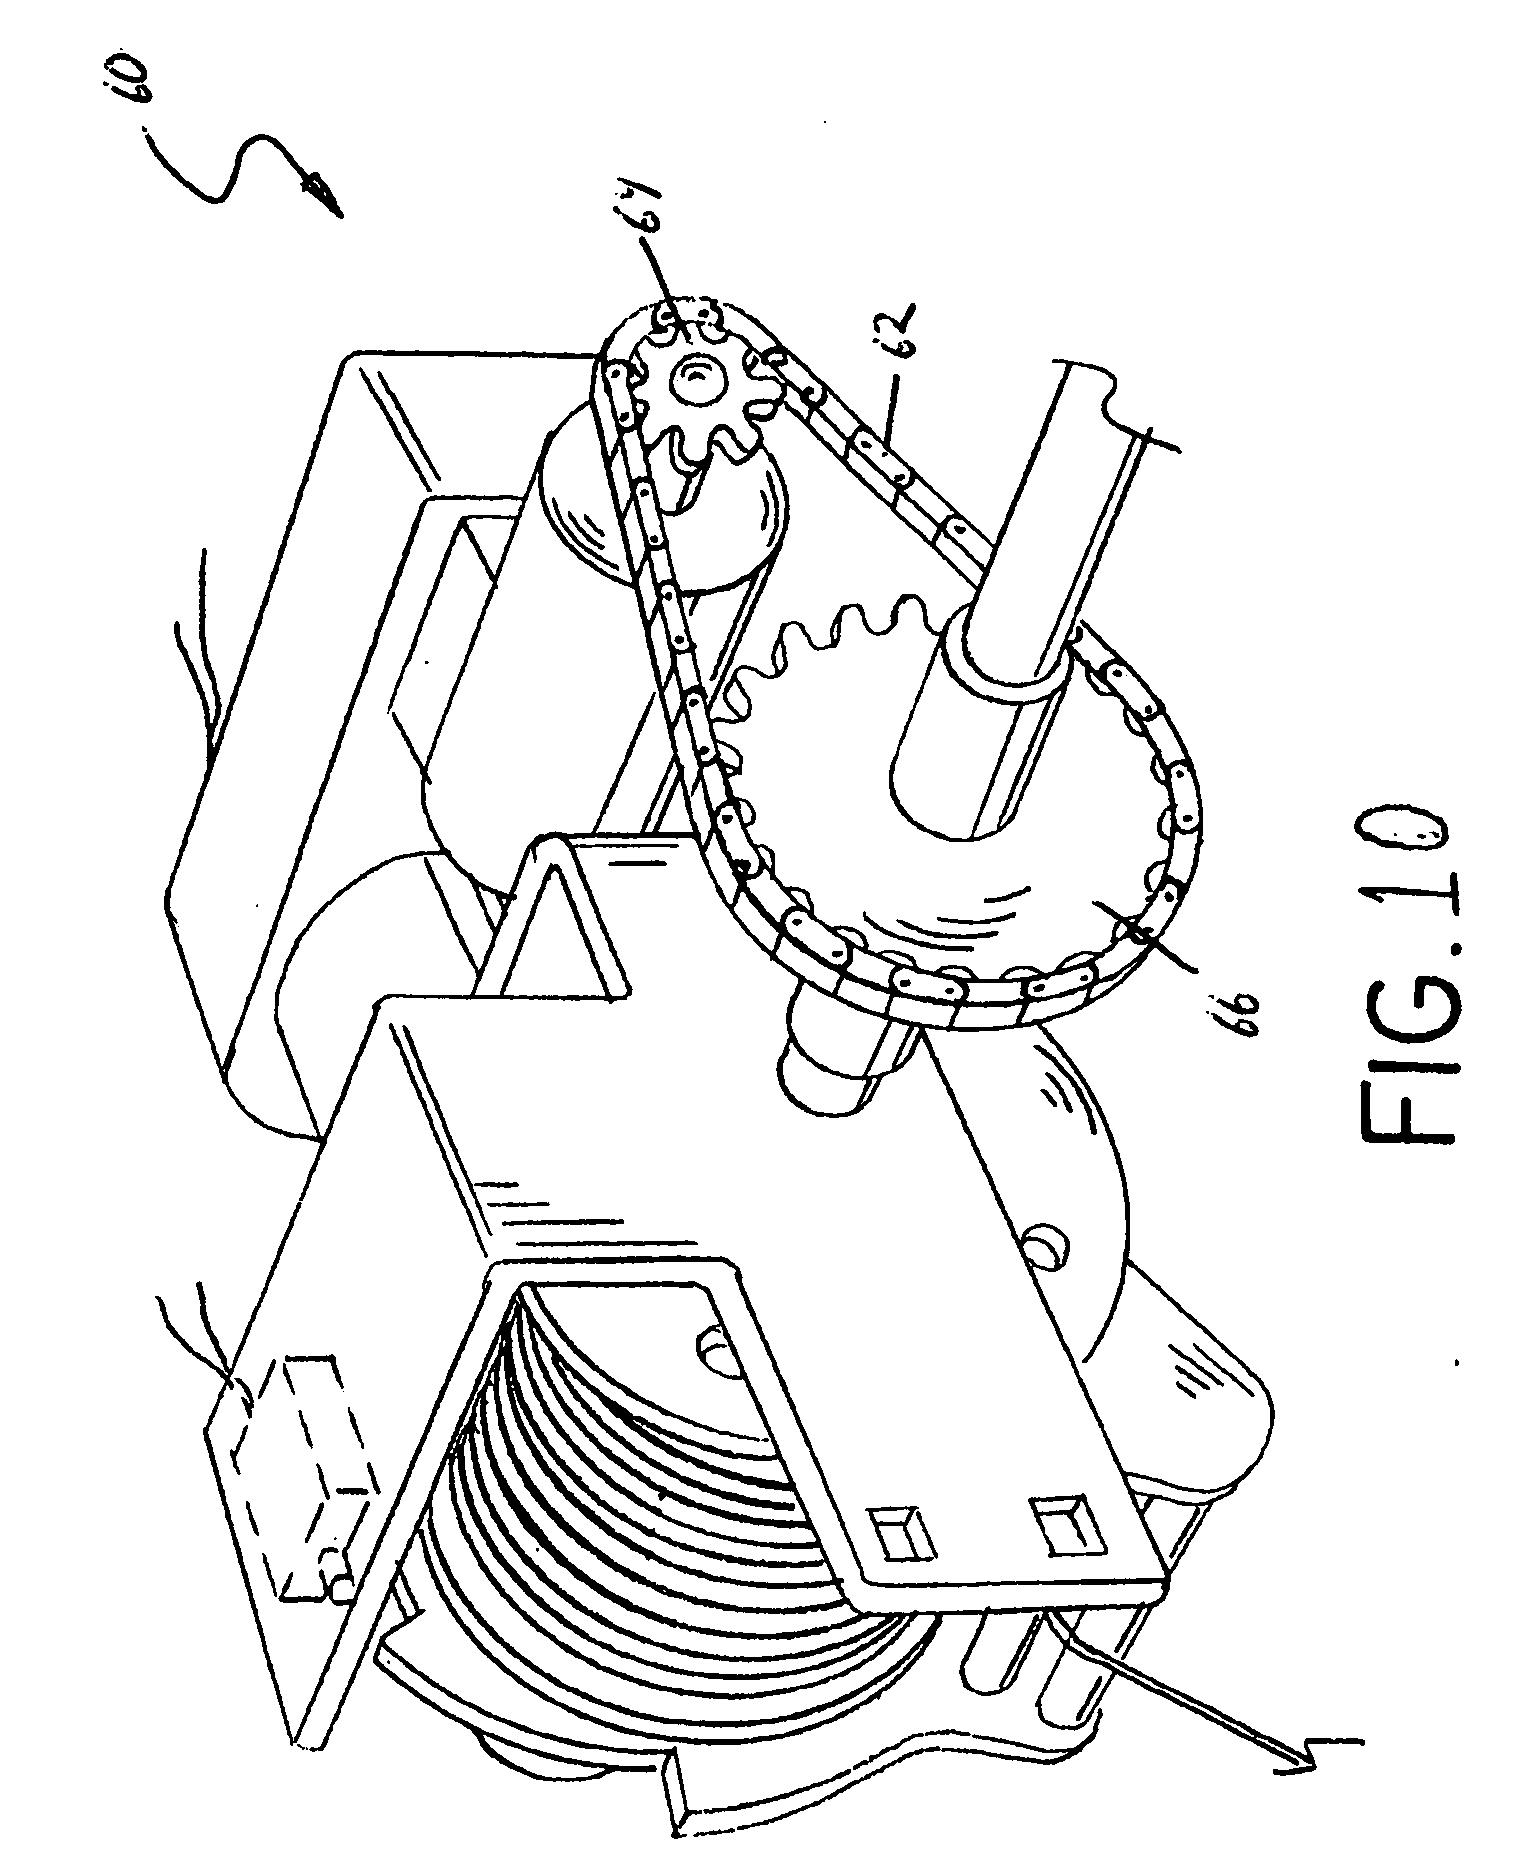 Suzuki savage ls 650 engine diagram